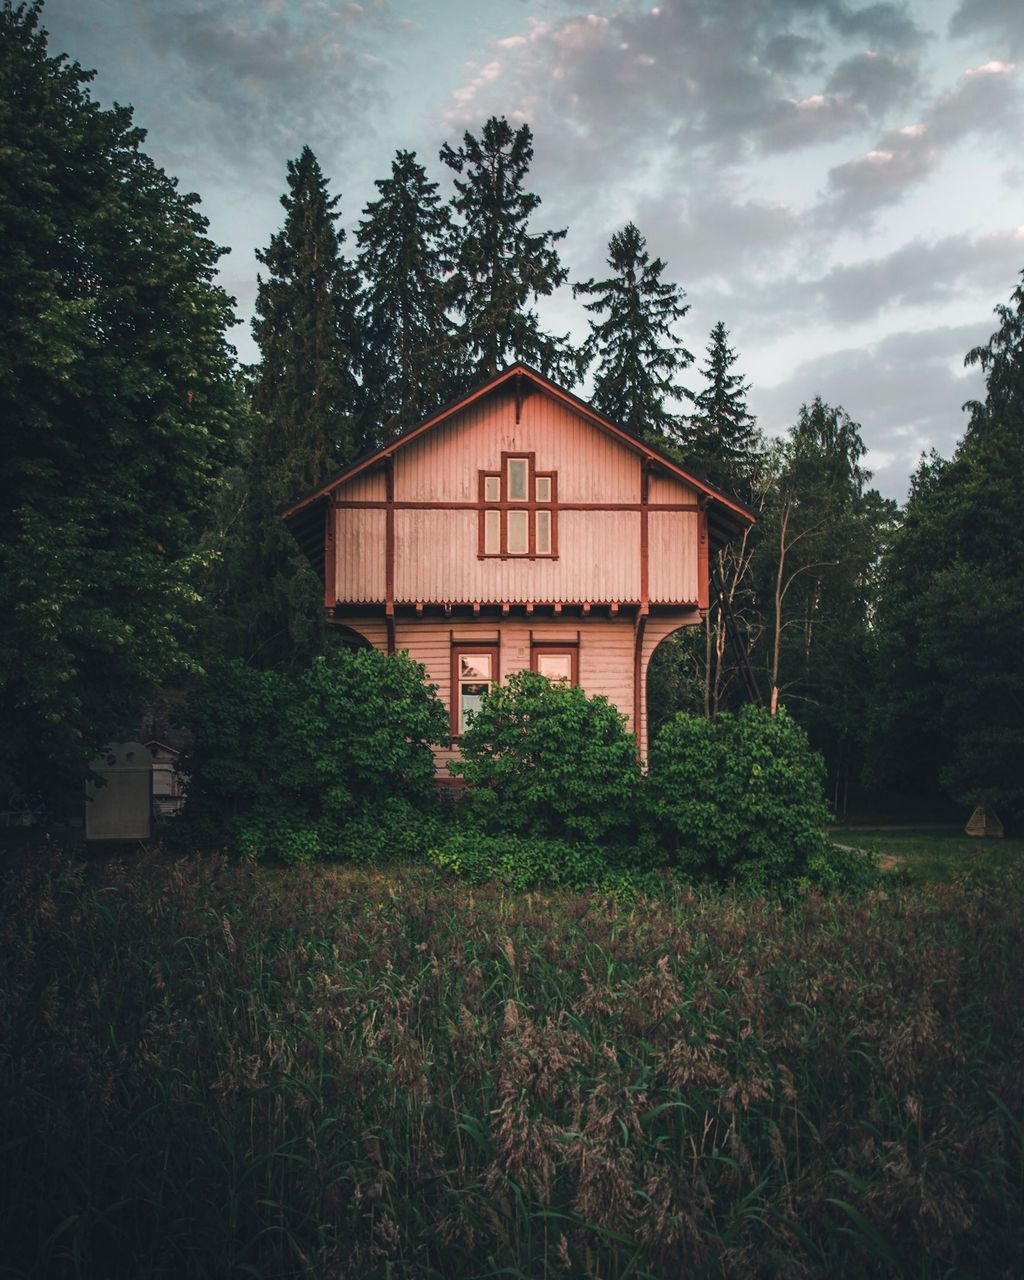 HOUSE ON FIELD AGAINST TREES IN FOREST